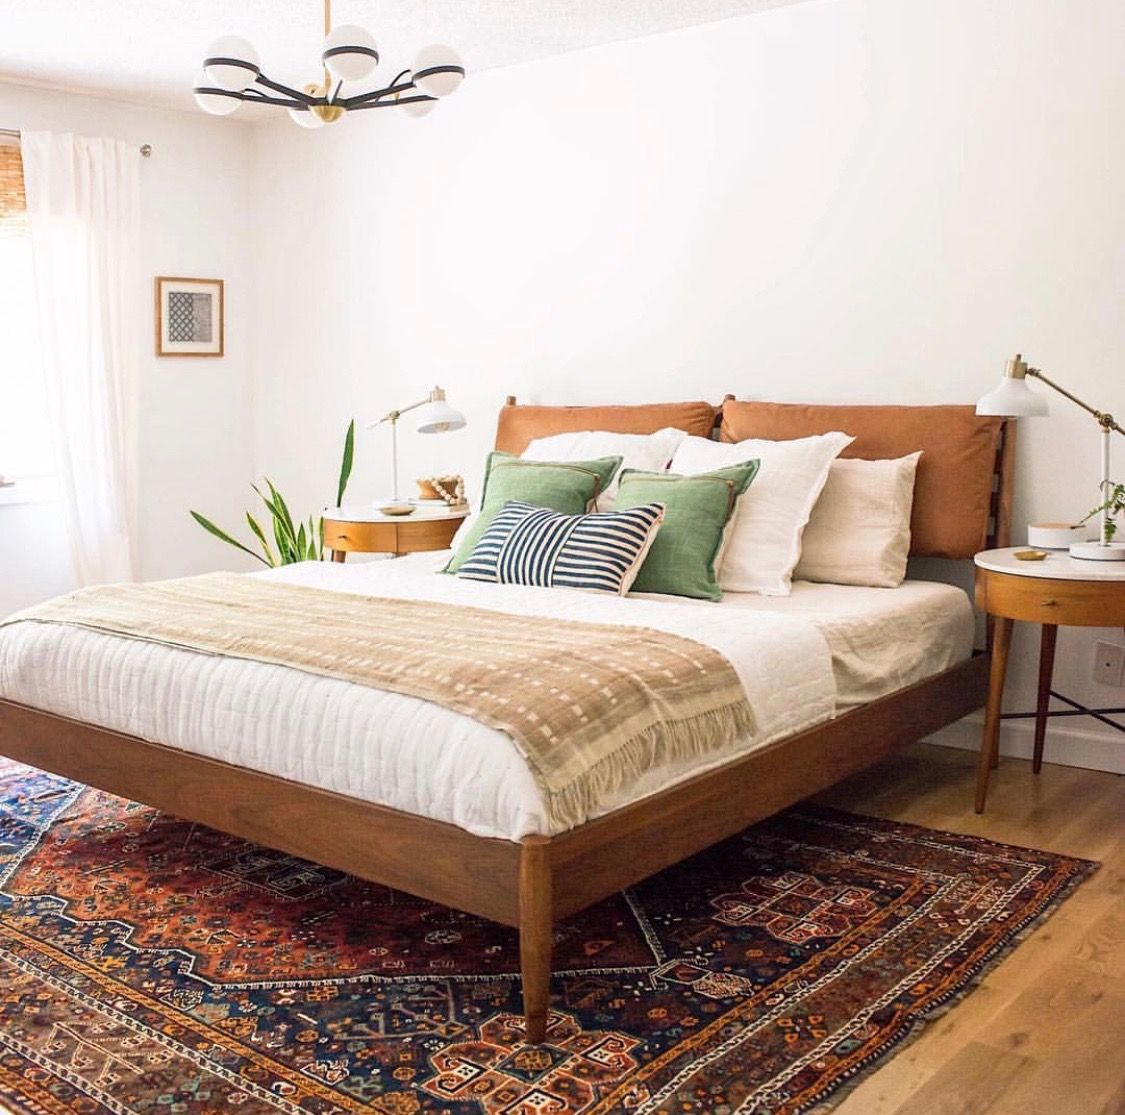 Bedroom With Modern Bed Frame Persian Carpet Unique Light Fixture Neutral To Mid Century Modern Bedroom Design Modern Bedroom Design Modern Eclectic Bedroom